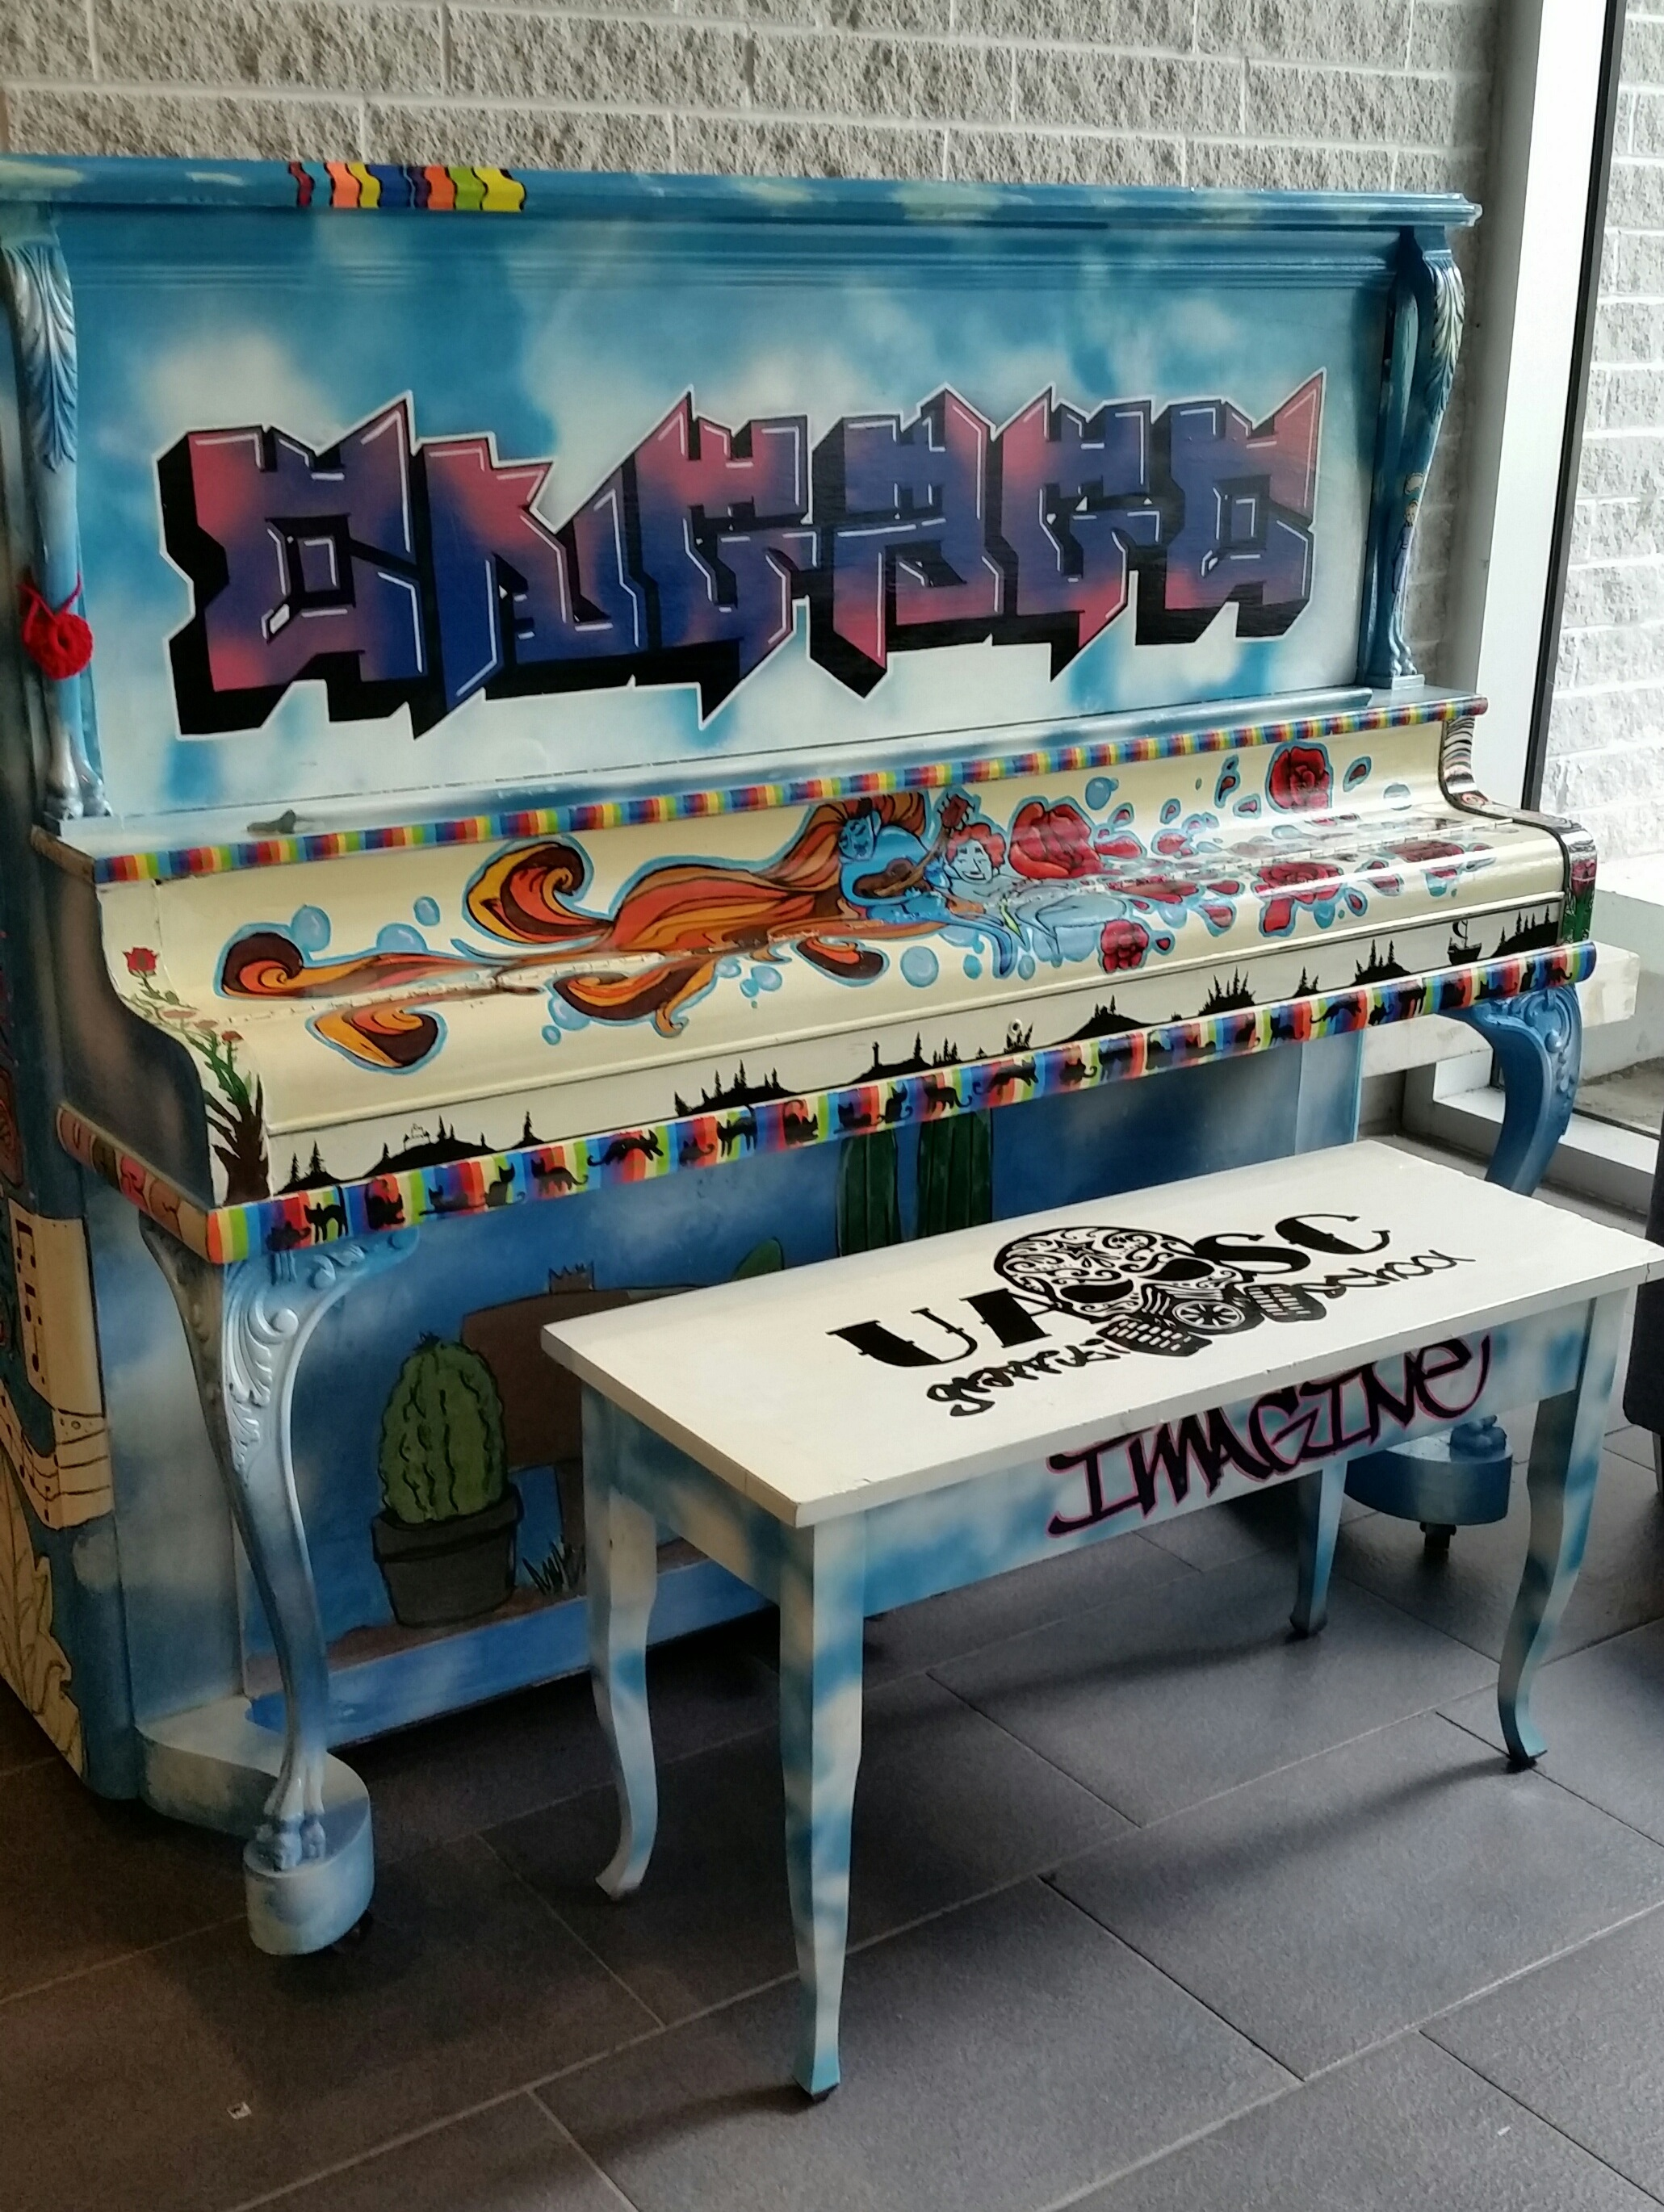 Graffiti designed piano